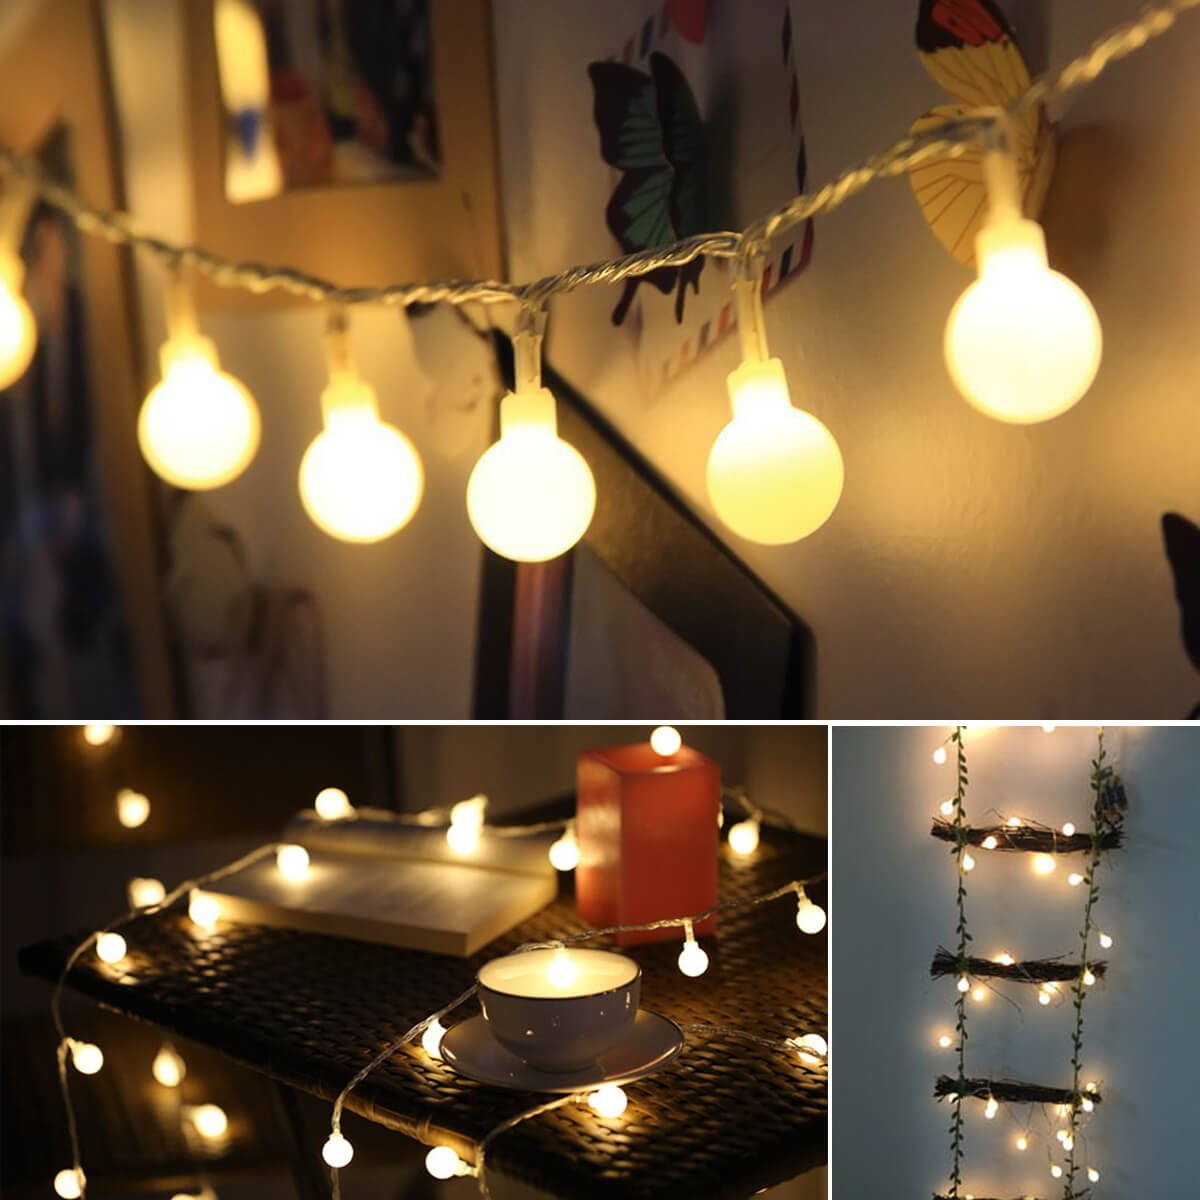 ALOVECO LED String Lights, 14.8ft 40 LED Waterproof Ball Lights, 8 Lighting Modes, Battery Powered Starry Fairy String Lights for Bedroom, Garden, Christmas Tree, Wedding, Party (Warm Light)